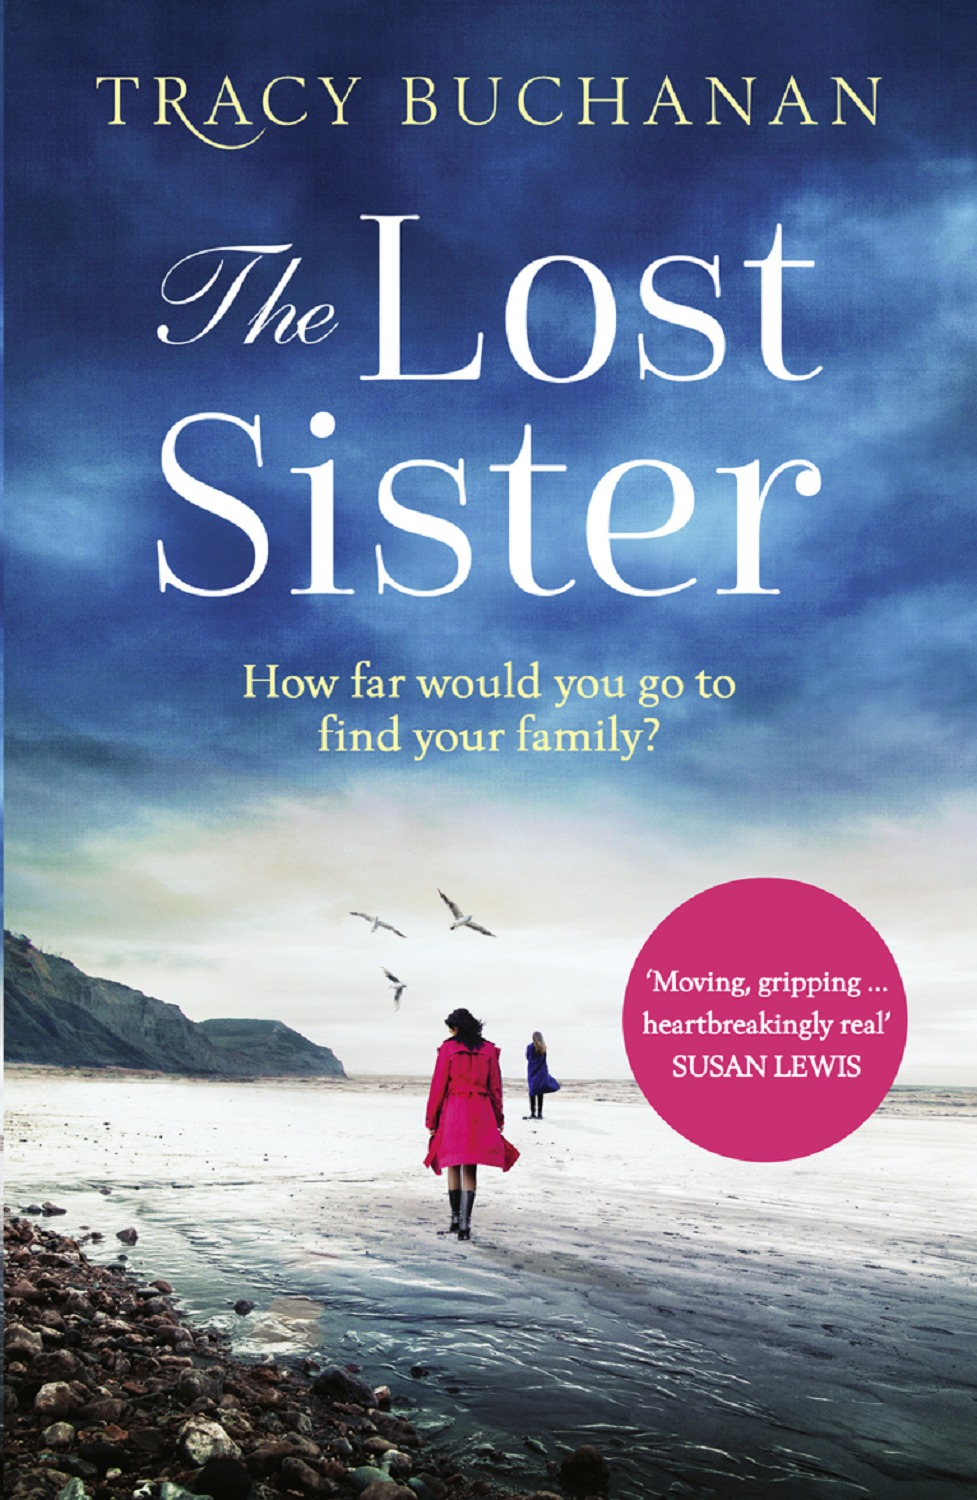 Tracy Buchanan The Lost Sister: A gripping emotional page turner with a breathtaking twist tracy buchanan her last breath the new gripping summer page turner from the no 1 bestseller